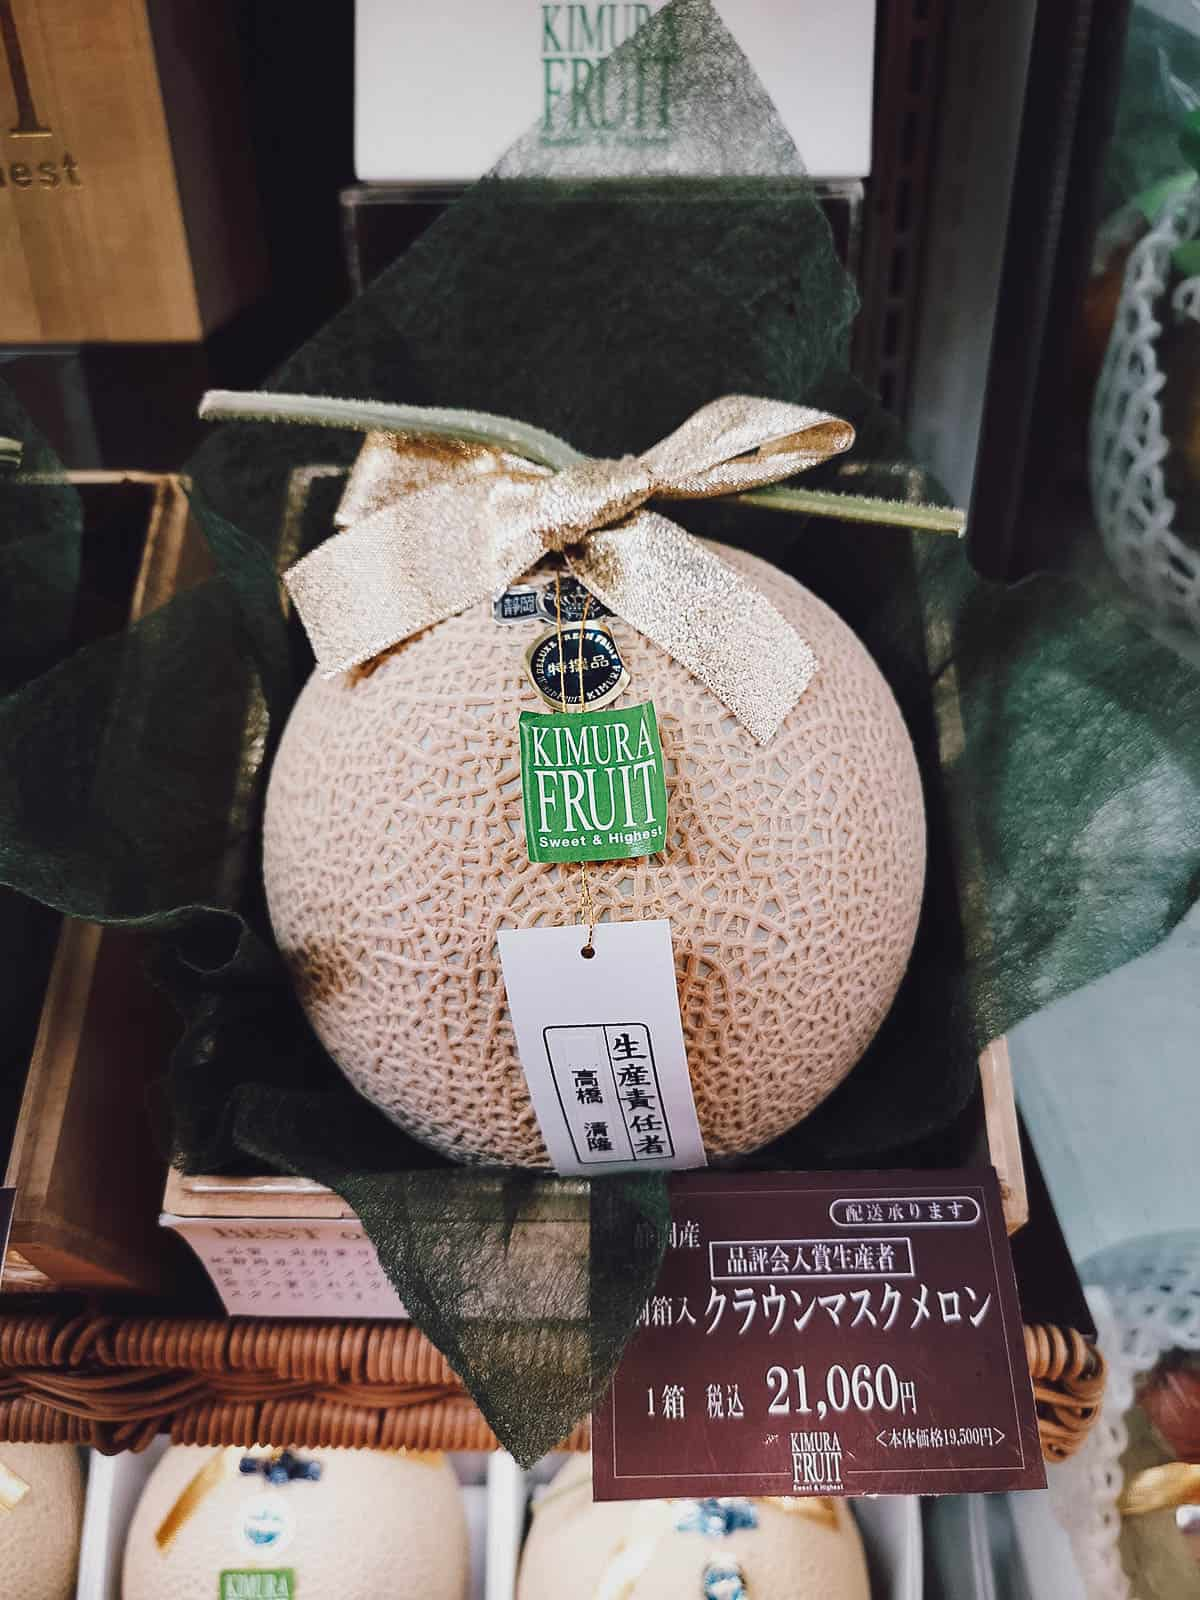 Expensive melon for sale at a depachika